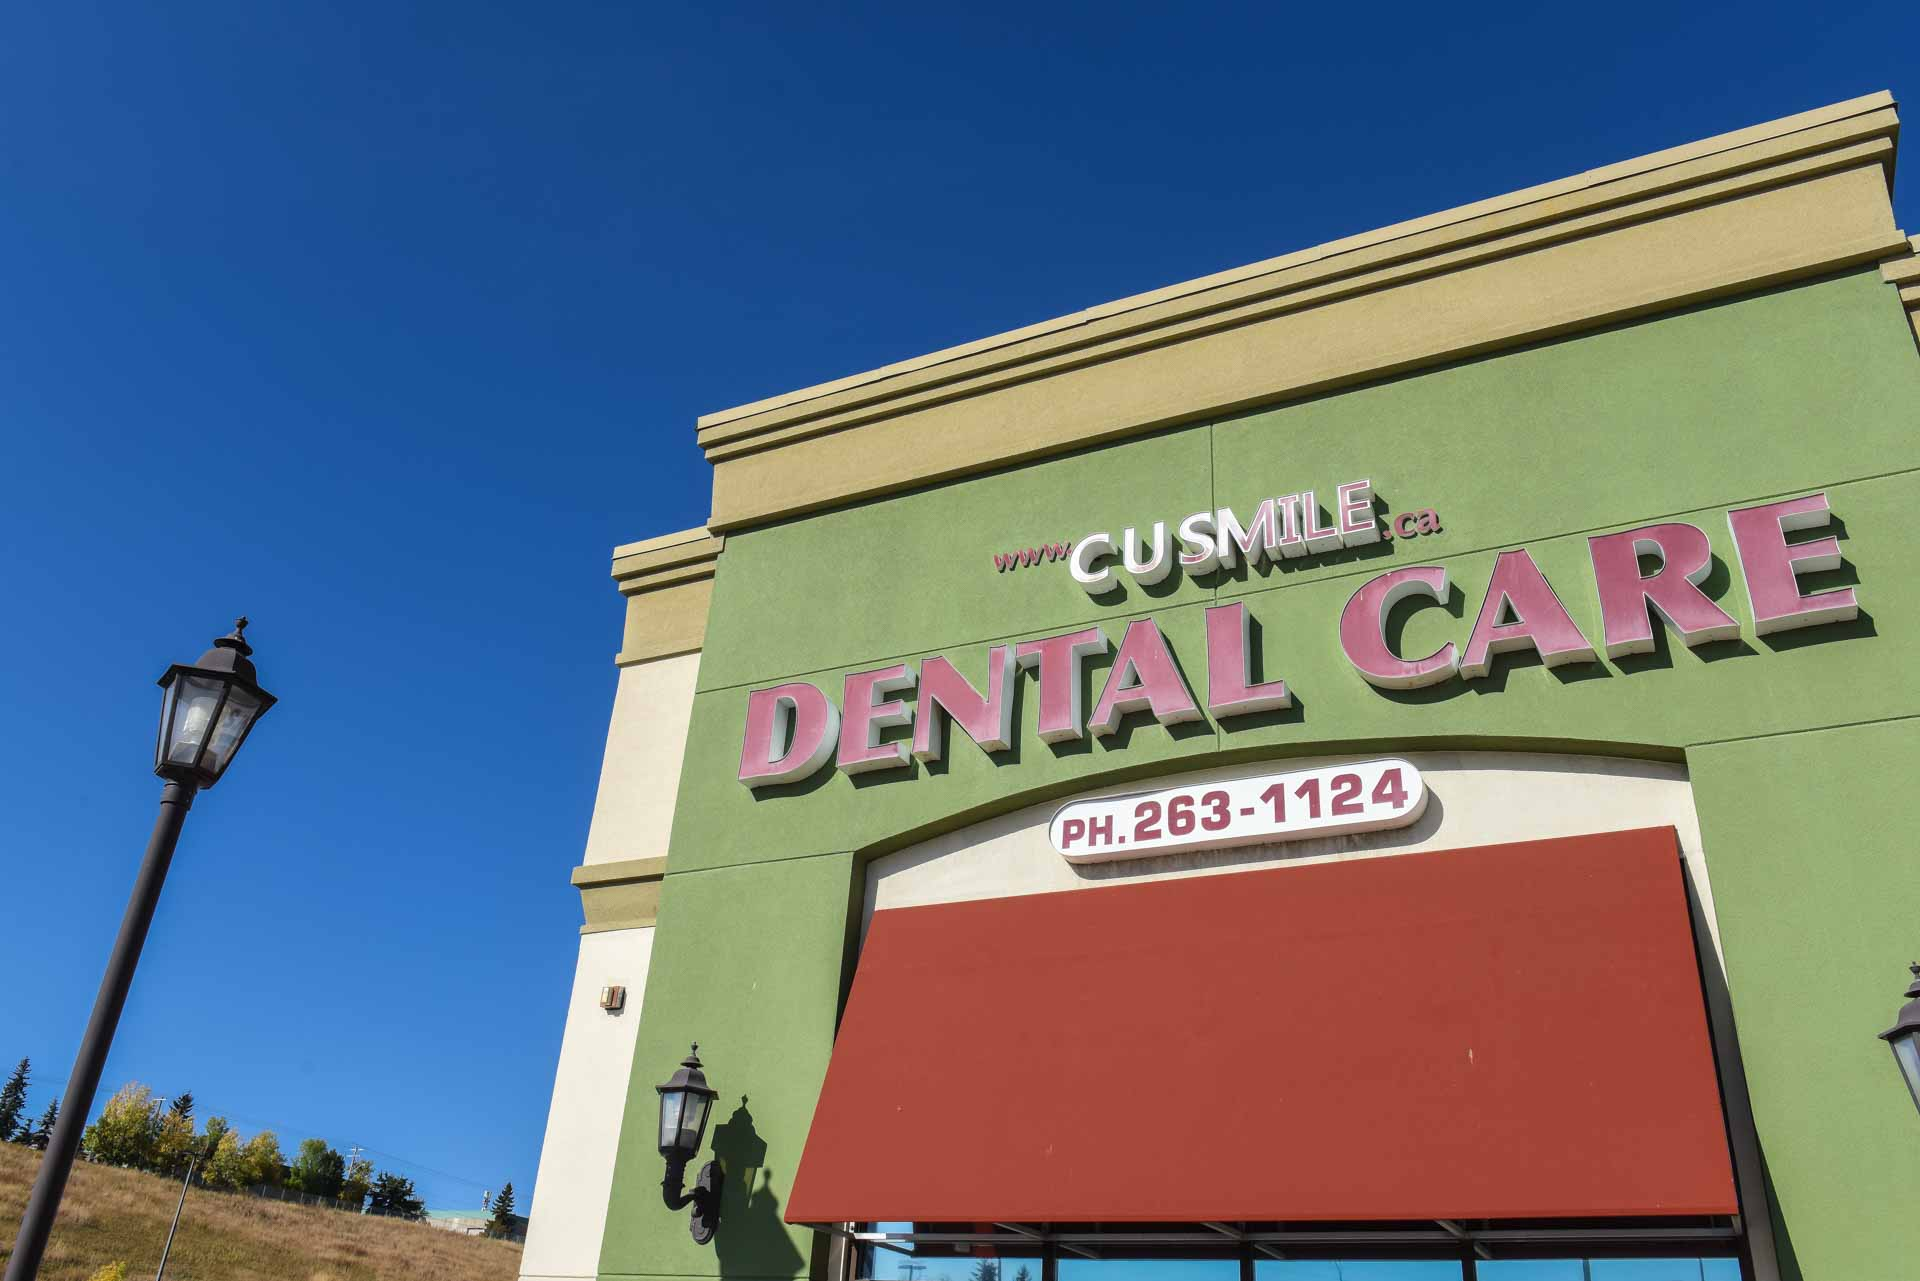 CU Smile Dental Care | Exterior